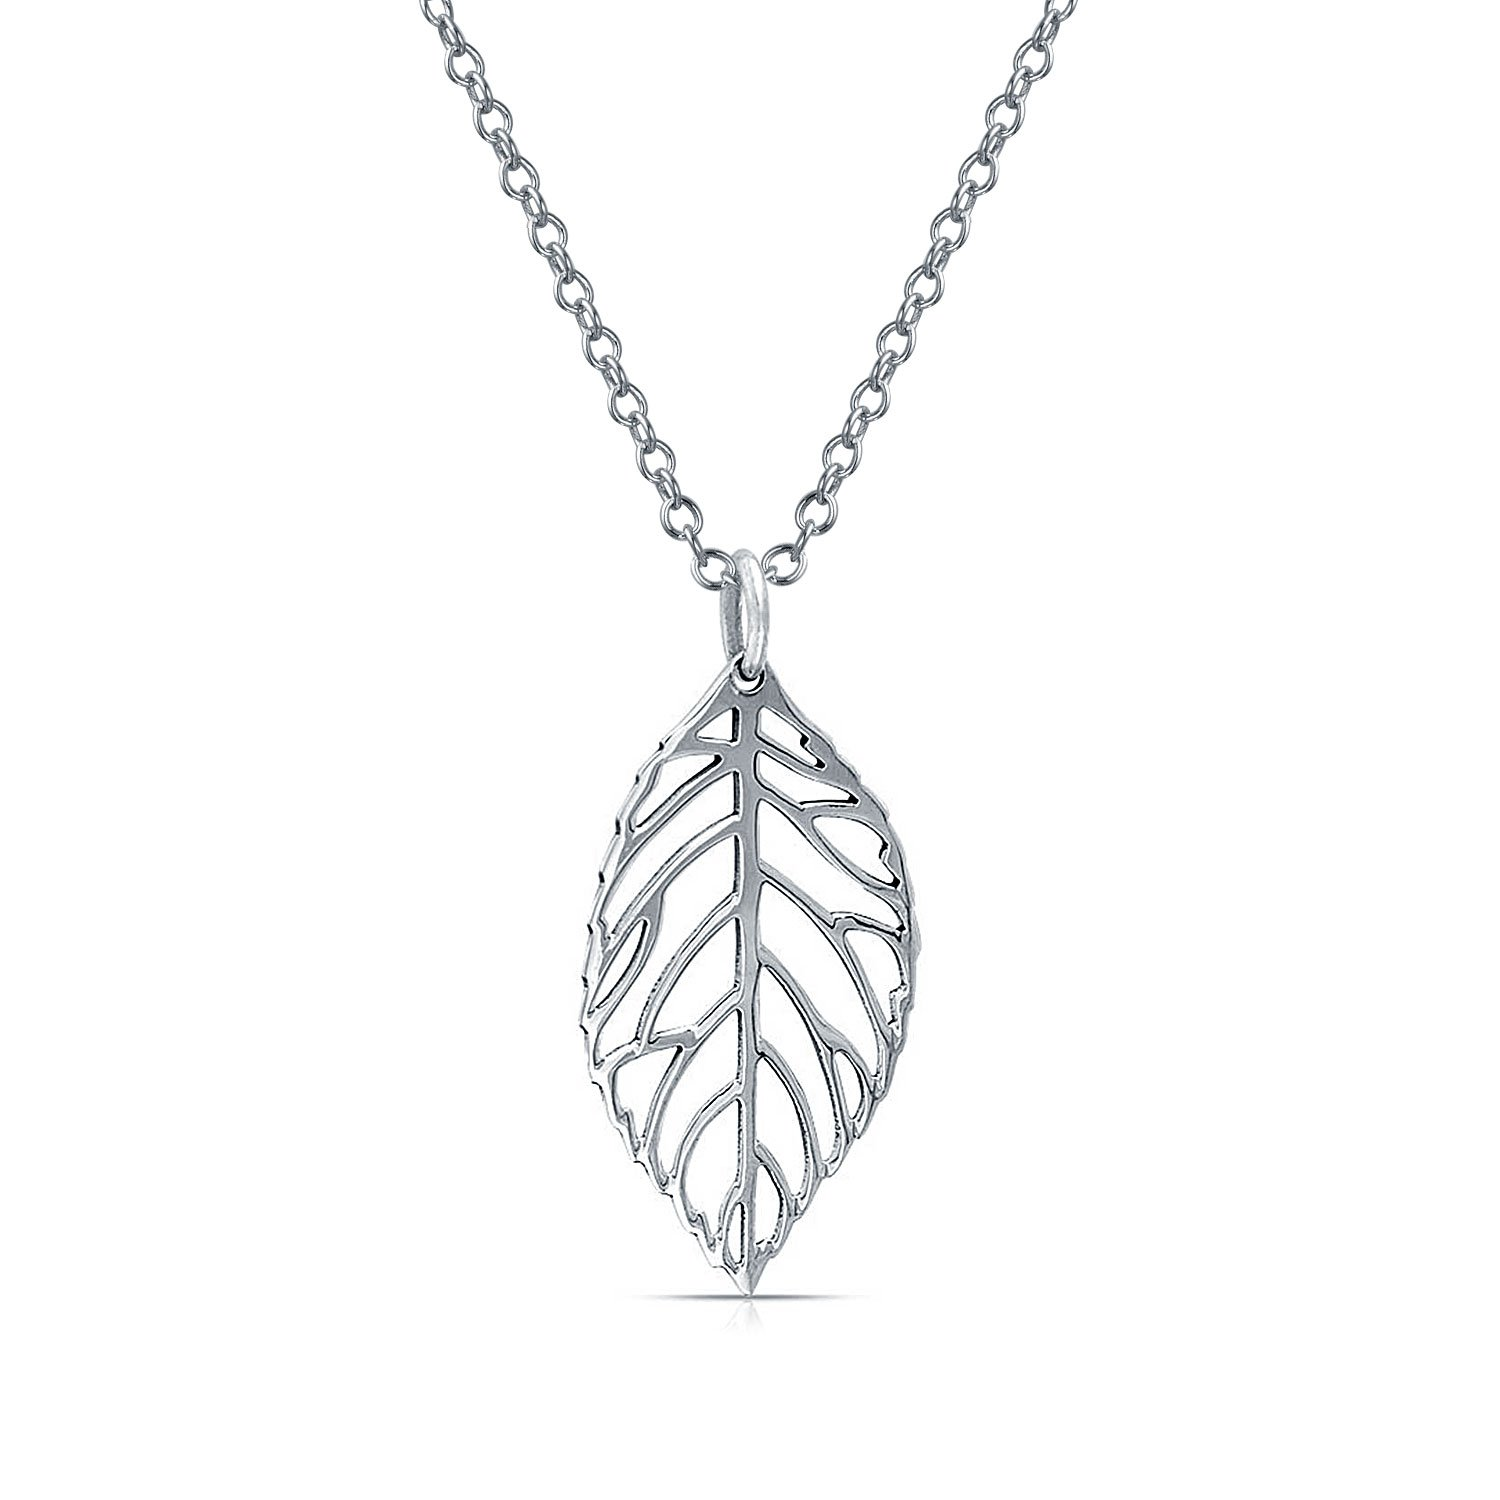 Bling Jewelry Leaf Filigree Pendant Sterling Silver Necklace 18 Inches PMR-P13410